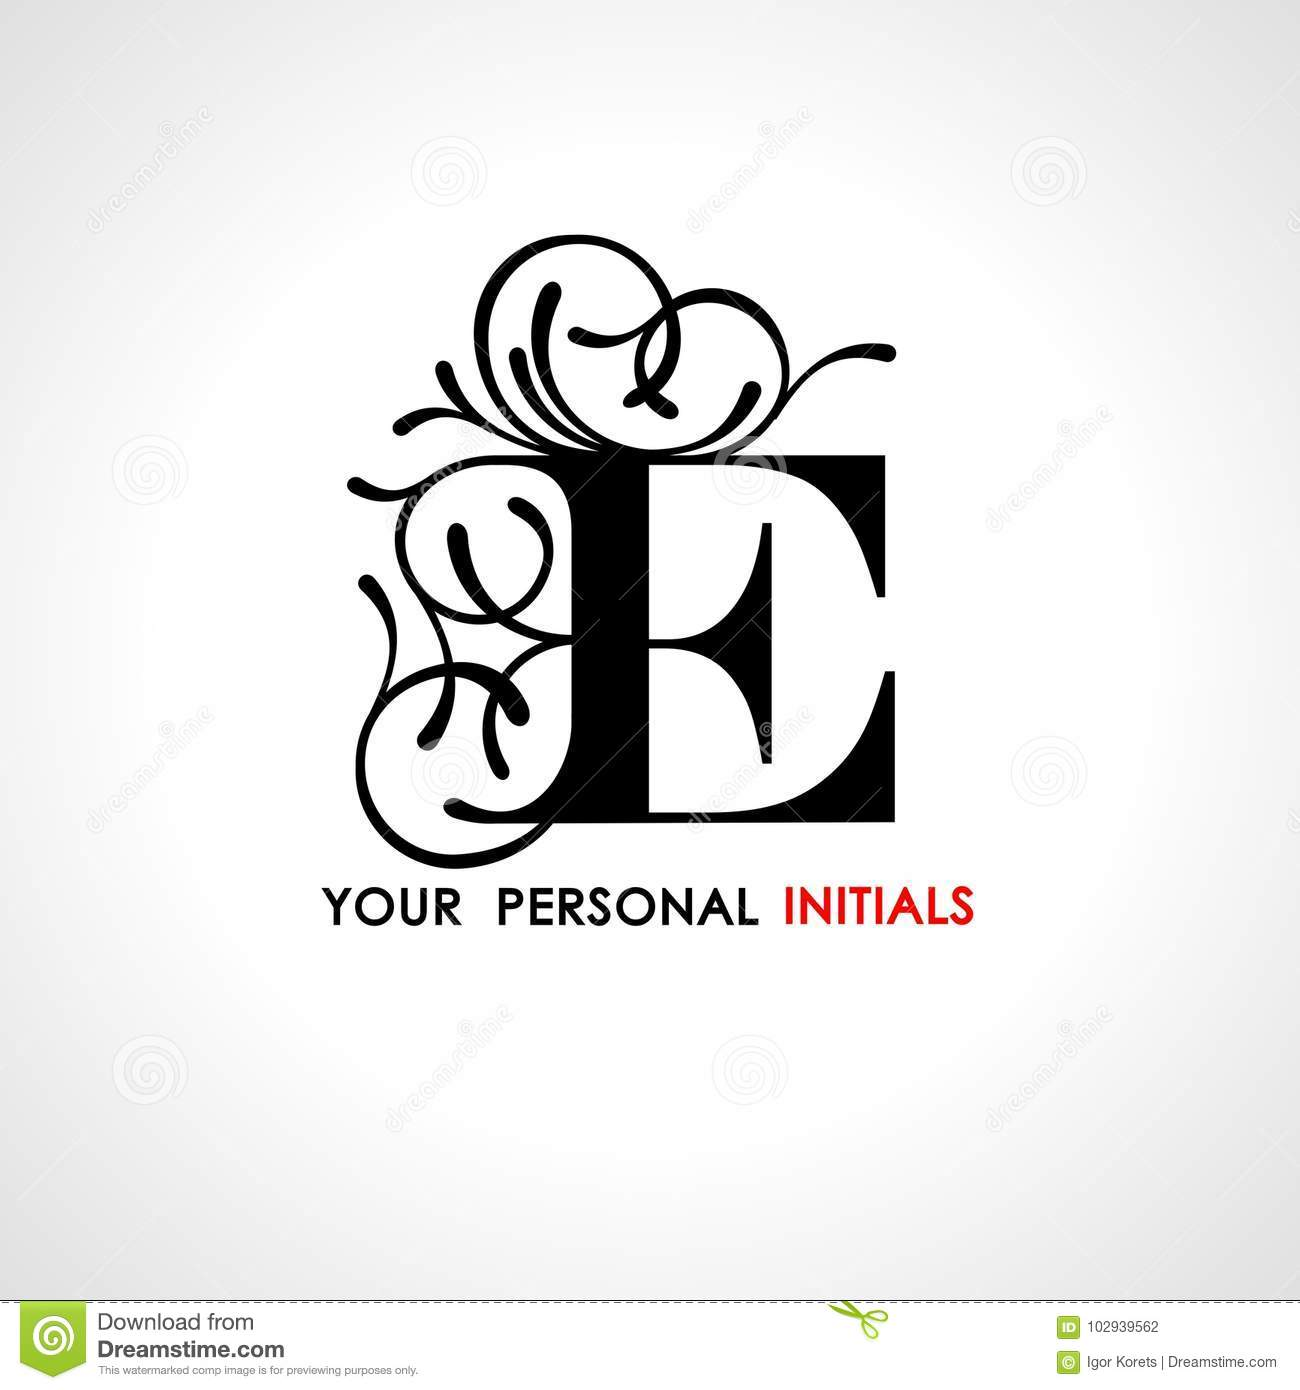 capital letter e decorated with vegetable ornament template for